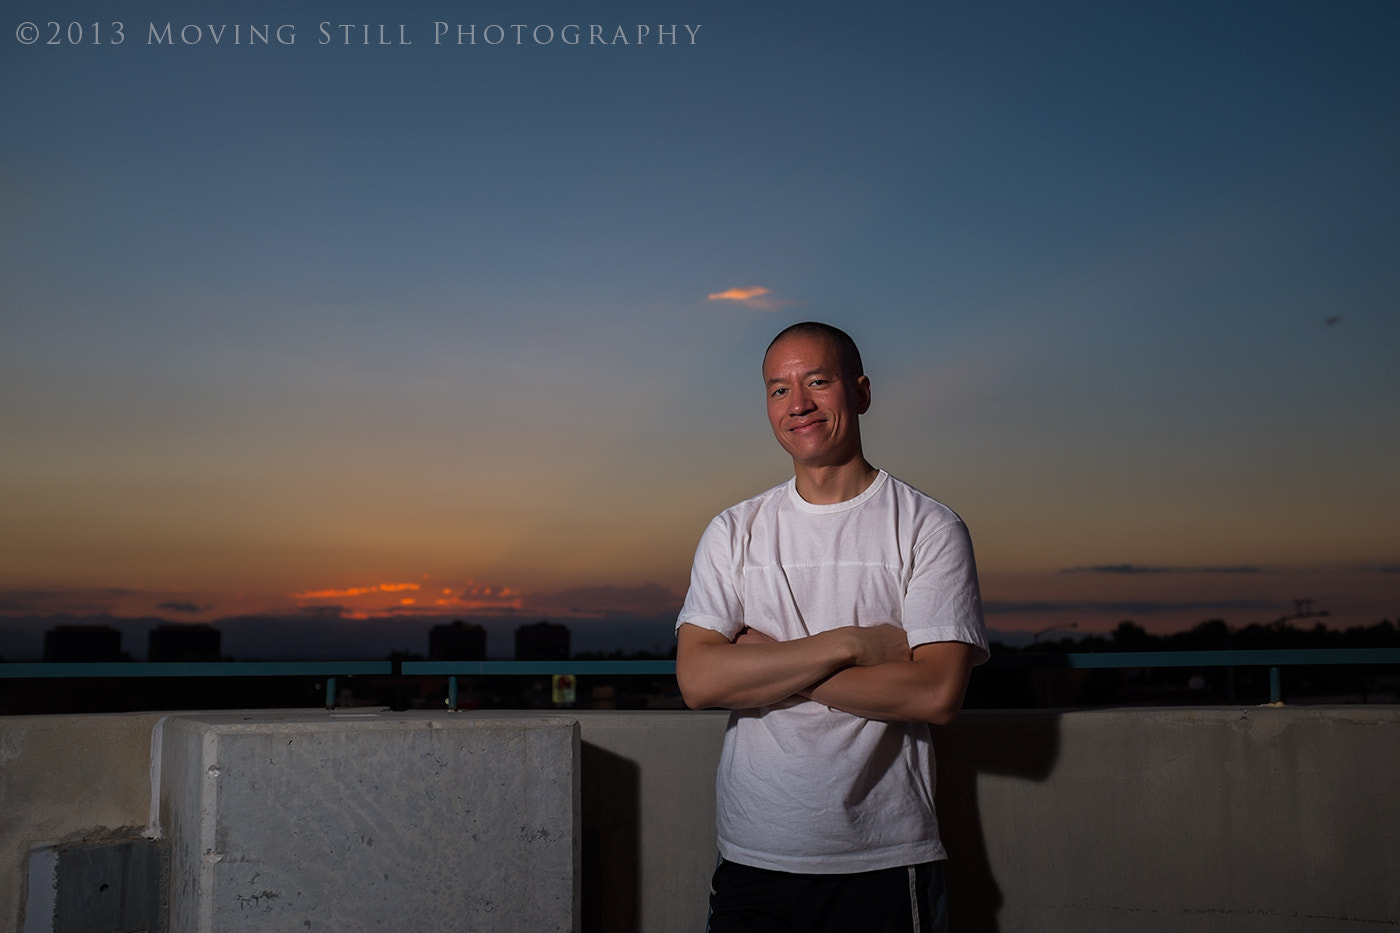 Photograph Sunset with the Fuji X100s by Moving Still Photography on 500px